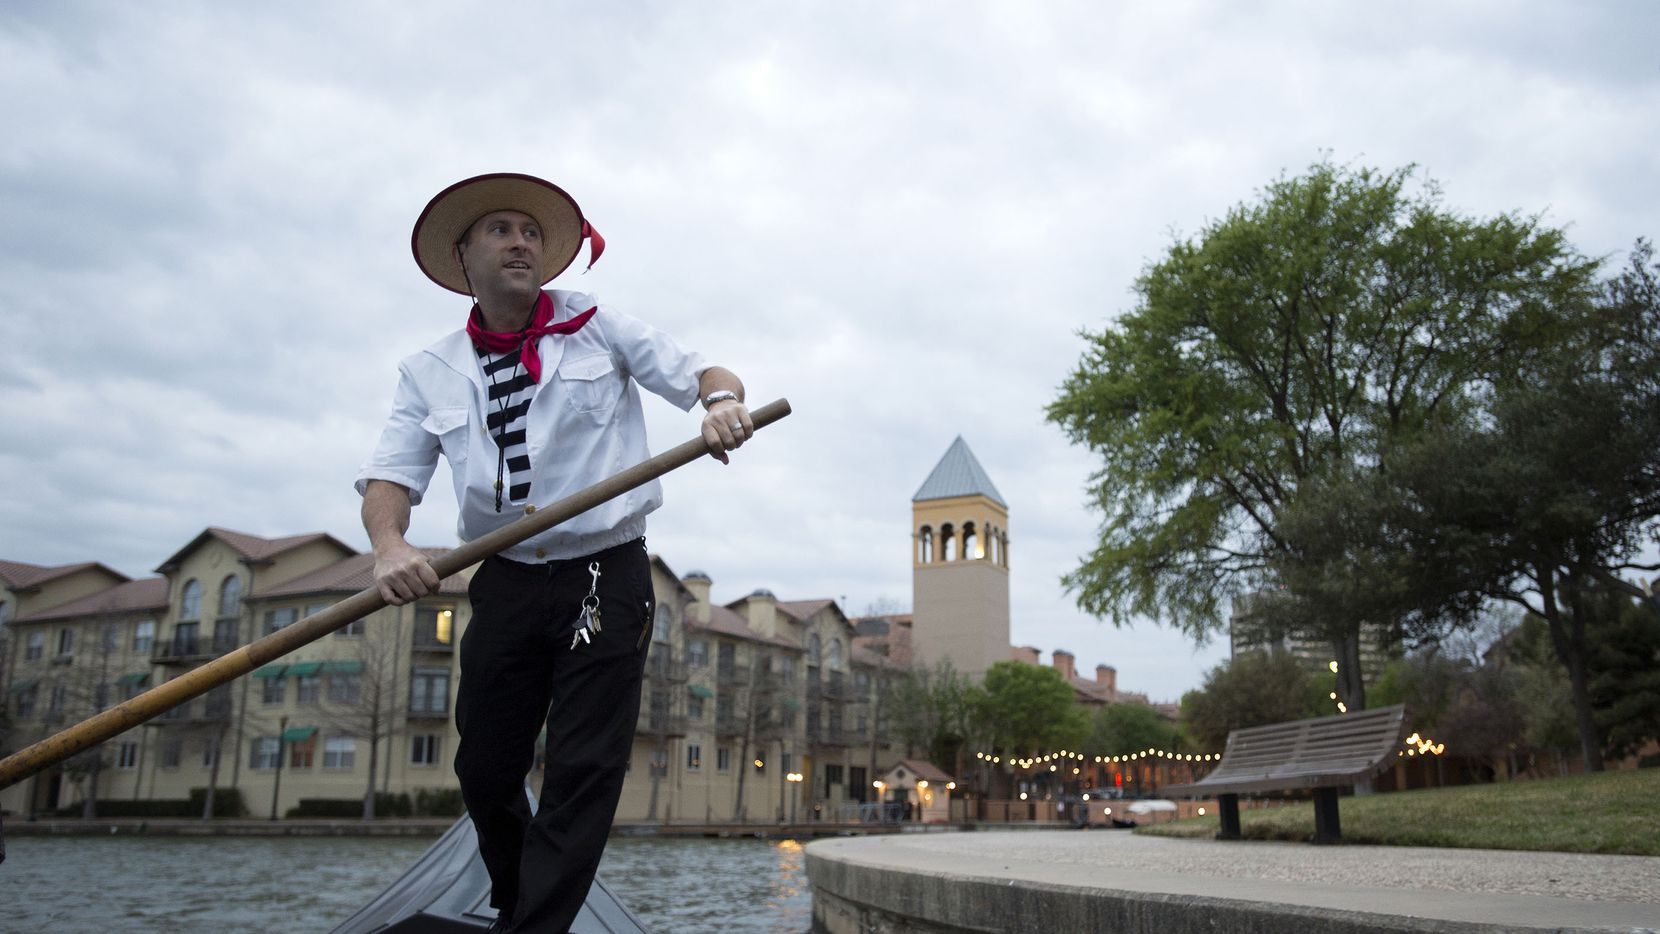 Greg Mohr, chief gondolier for Gondola Adventures, rows his gondola on Las Colinas' Lake Carolyn in March, 2013 in Irving, Texas.